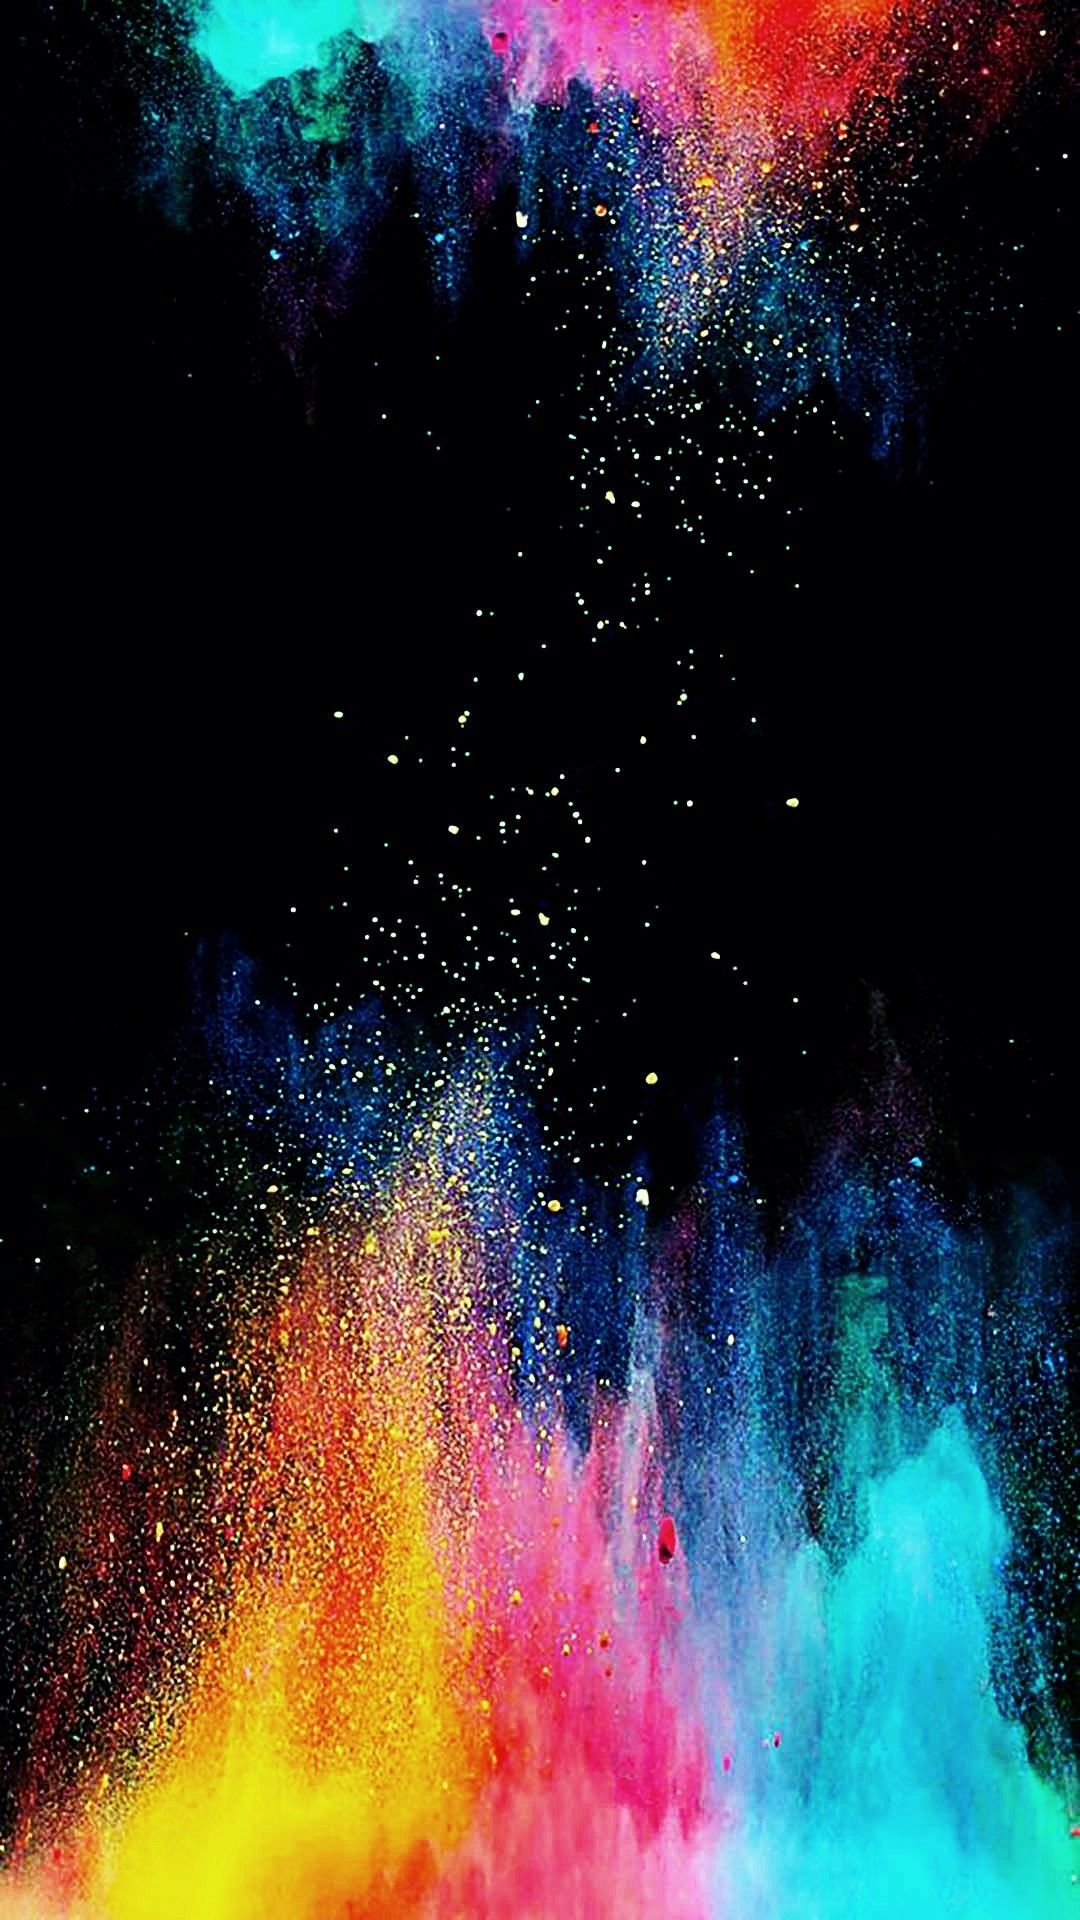 Pin By Iety On Fondos De Pantalla Para Celular Colourful Wallpaper Iphone Iphone Wallpaper Smoke Screen Savers Wallpapers Backgrounds